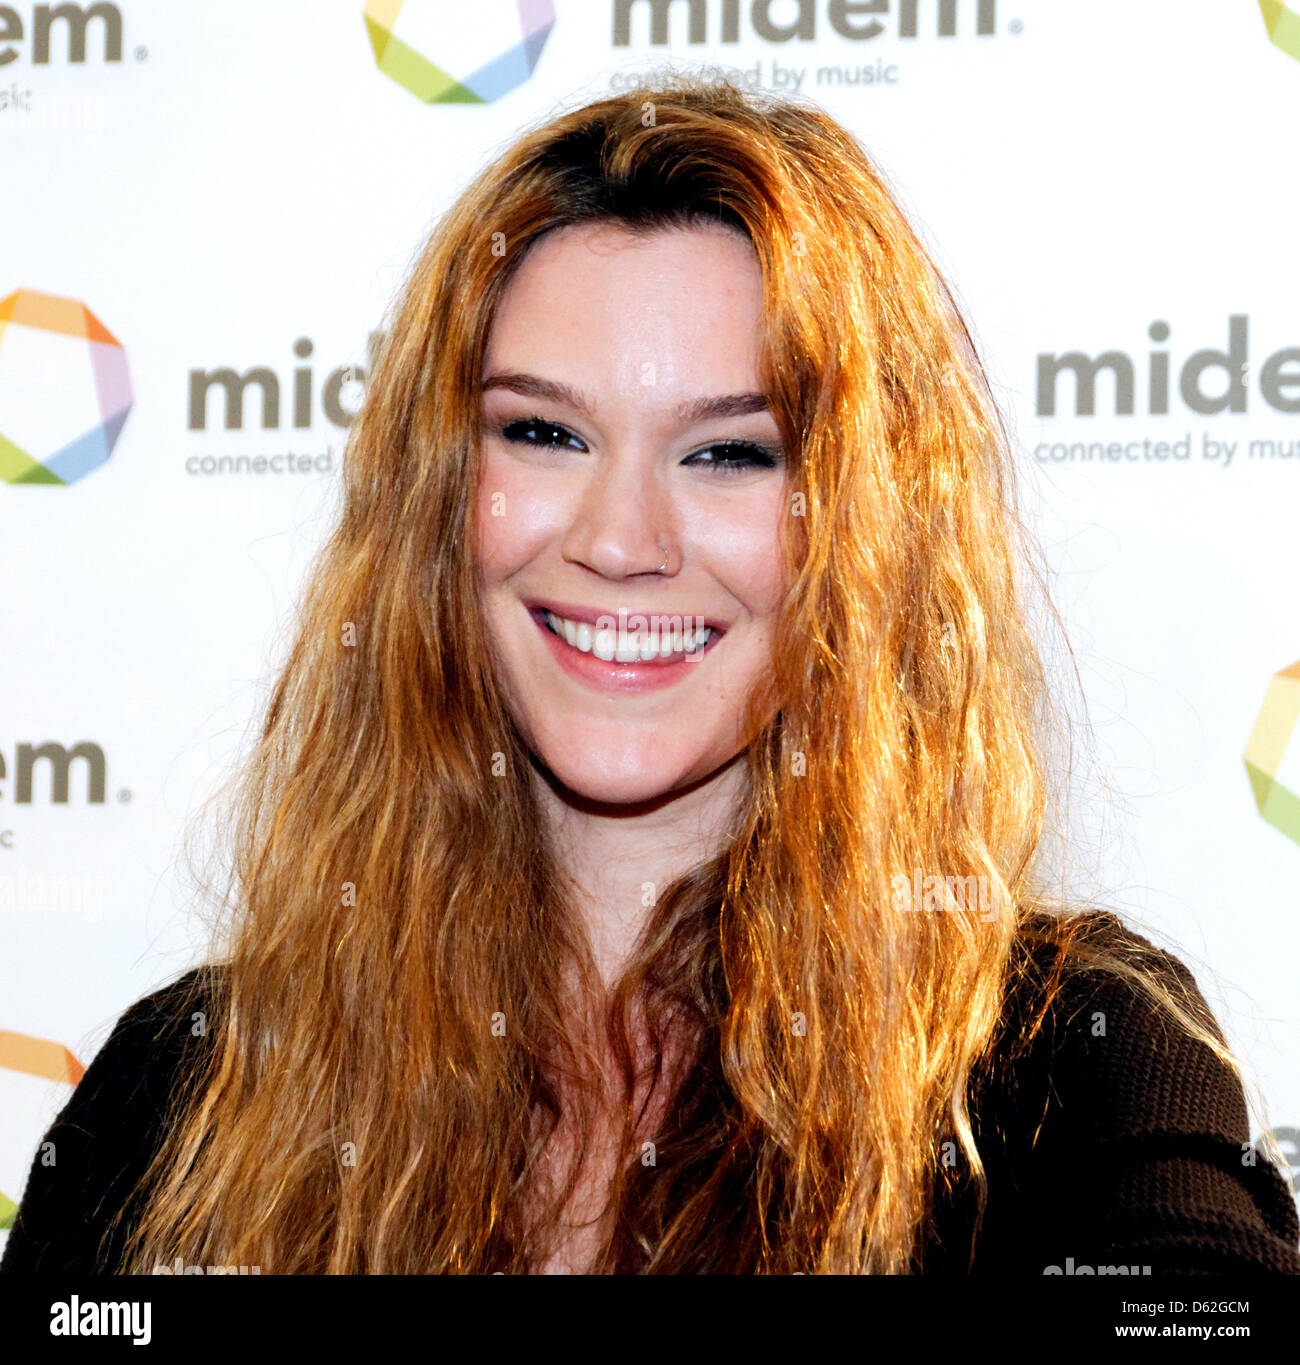 Joss Stone discusses her label Stone'd Records at the Getty Images Music press conference during MIDEM Cannes - Stock Image